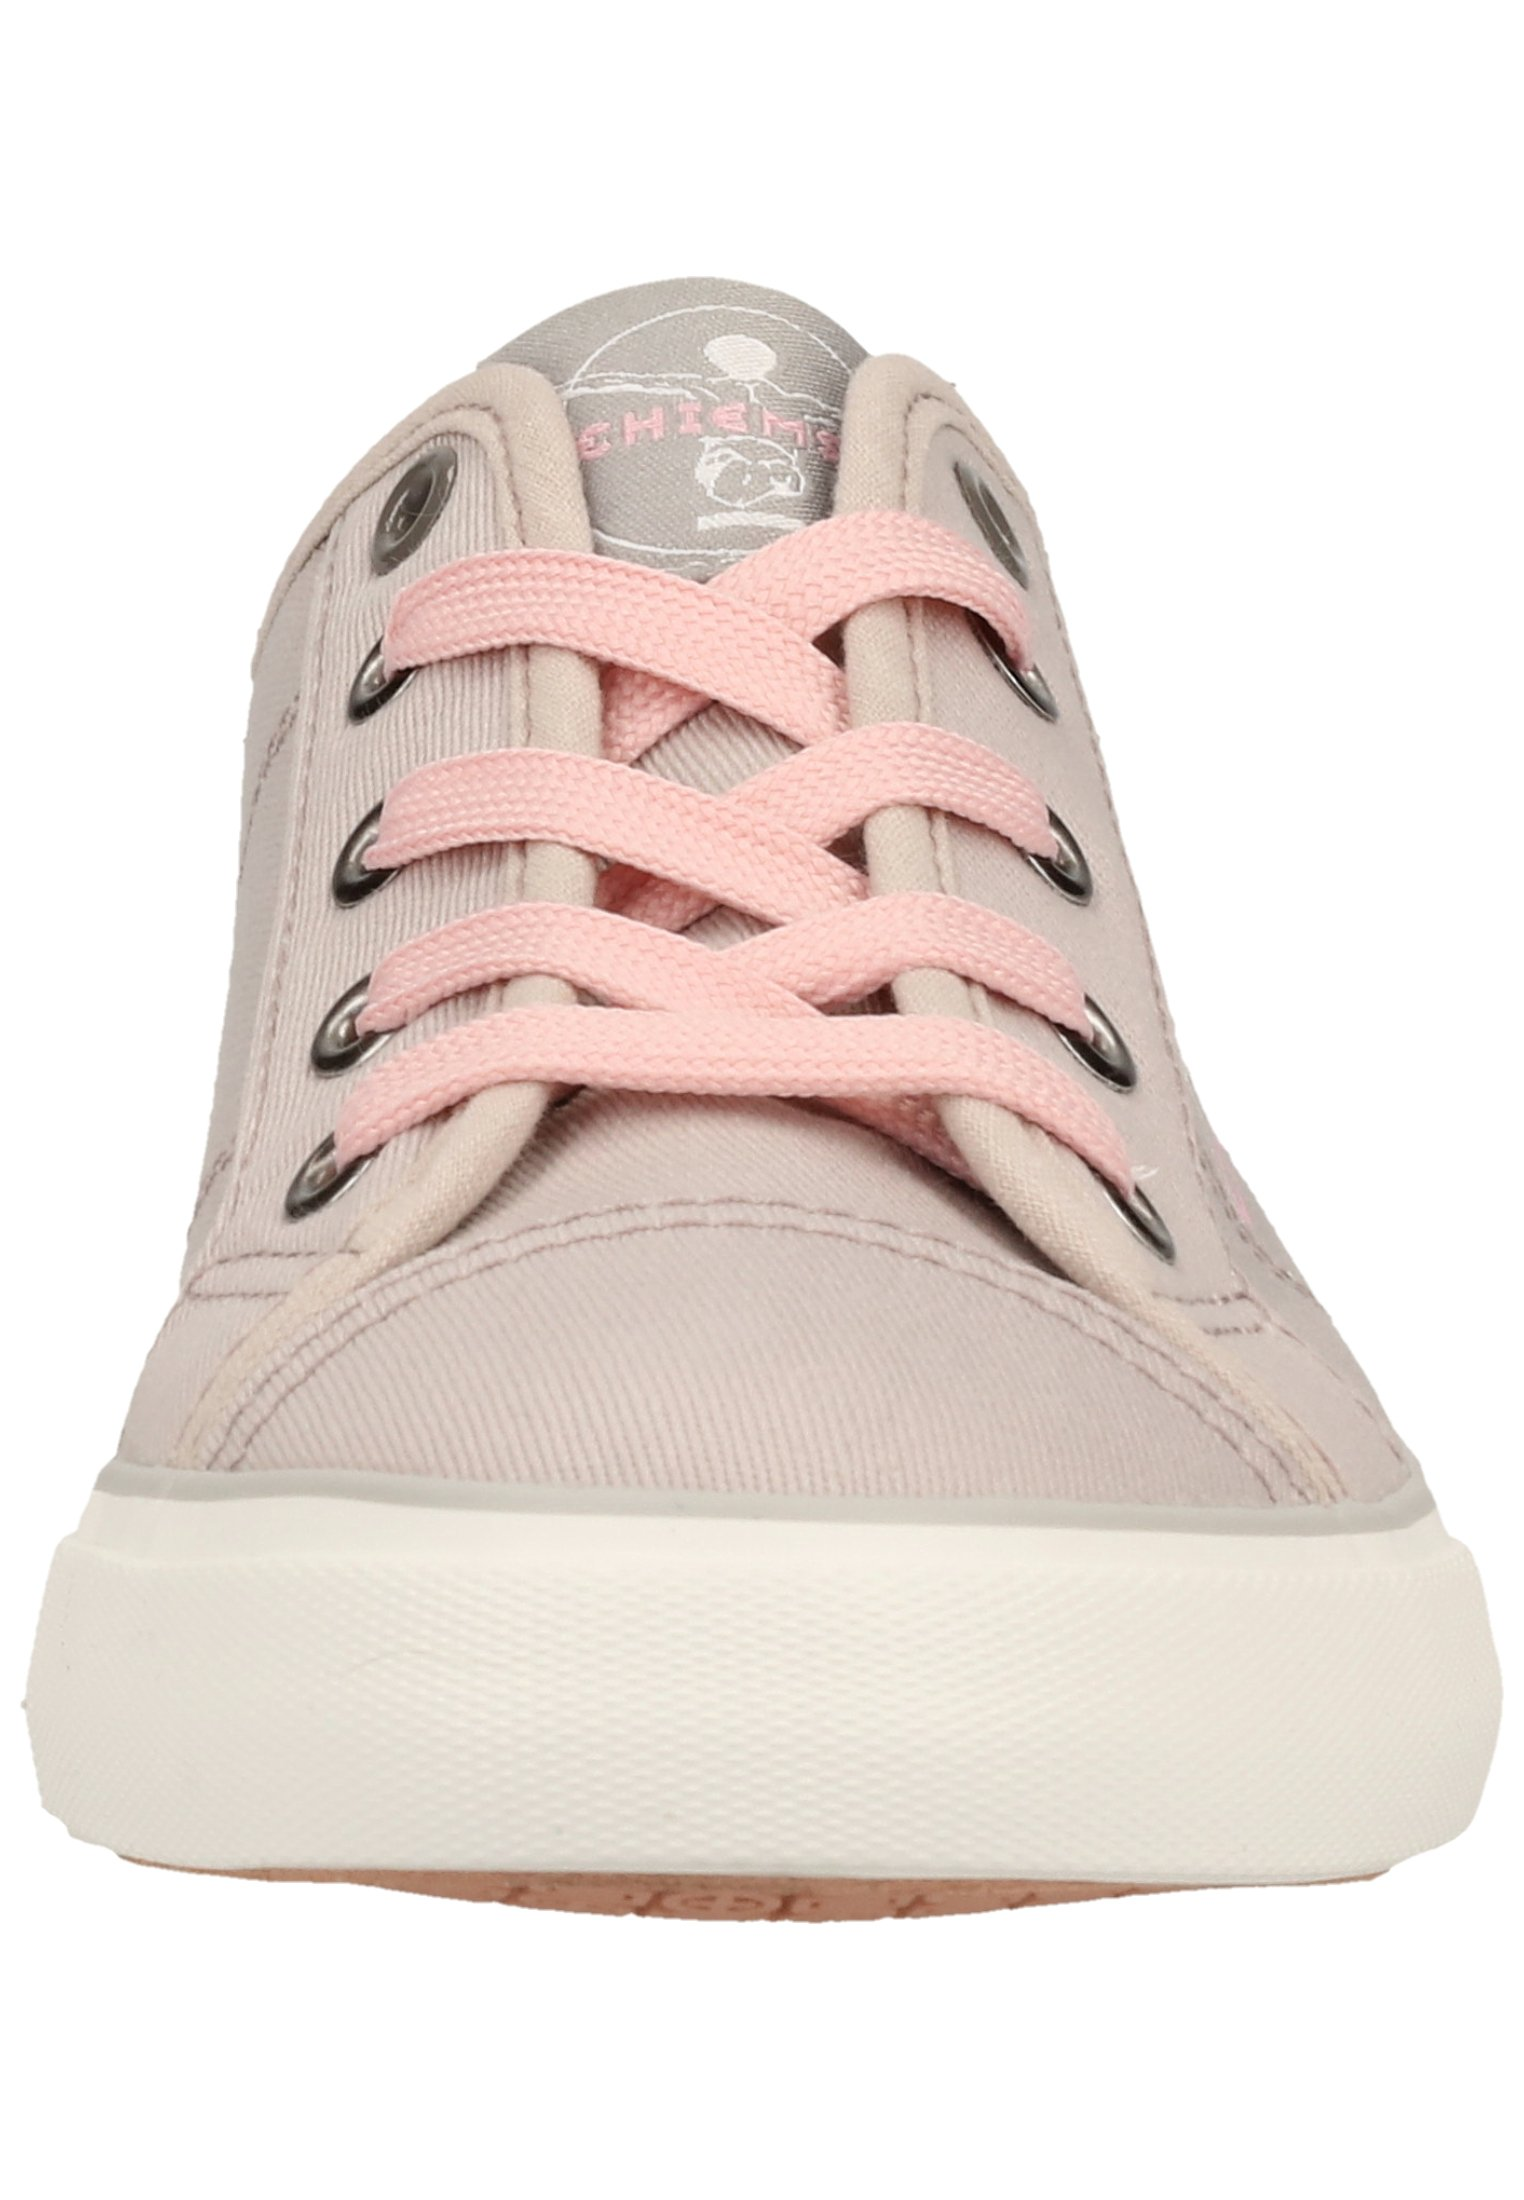 Chiemsee Baskets basses - washed grey - Sneakers femme De gros